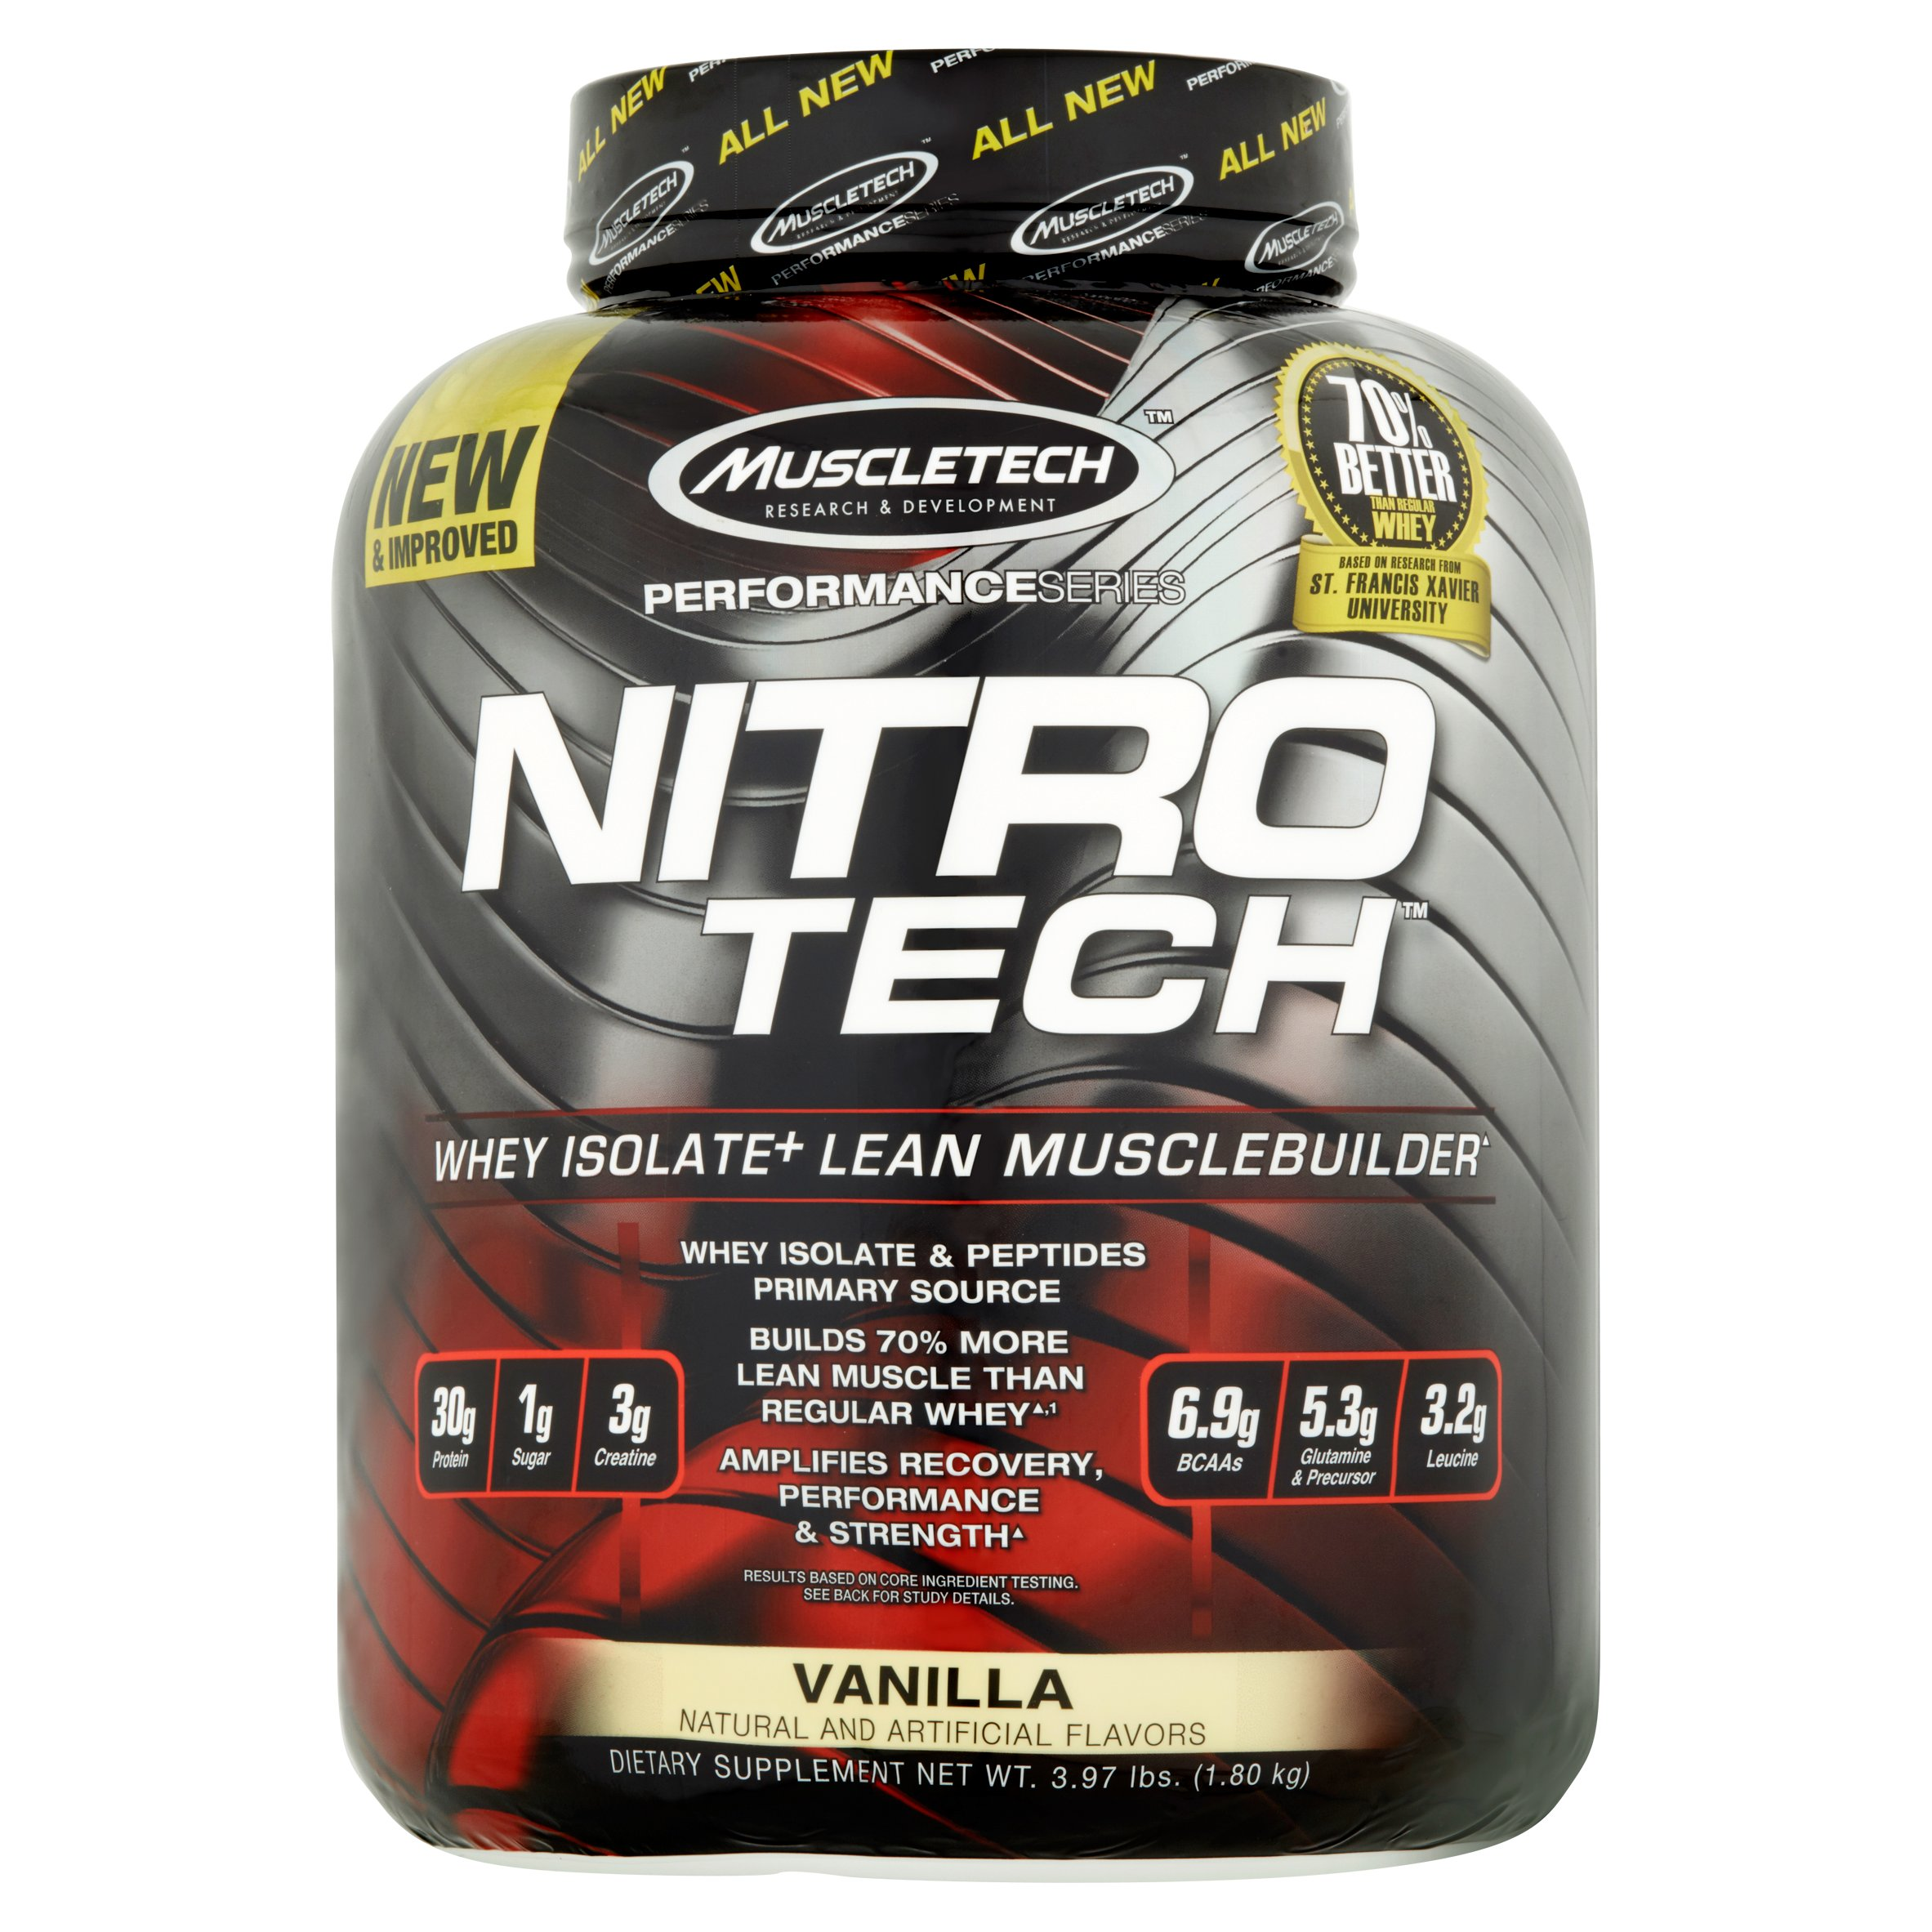 Muscletech Nitro Tech Whey Isolate Protein Powder, Vanilla, 30g Protein, 4 Lb